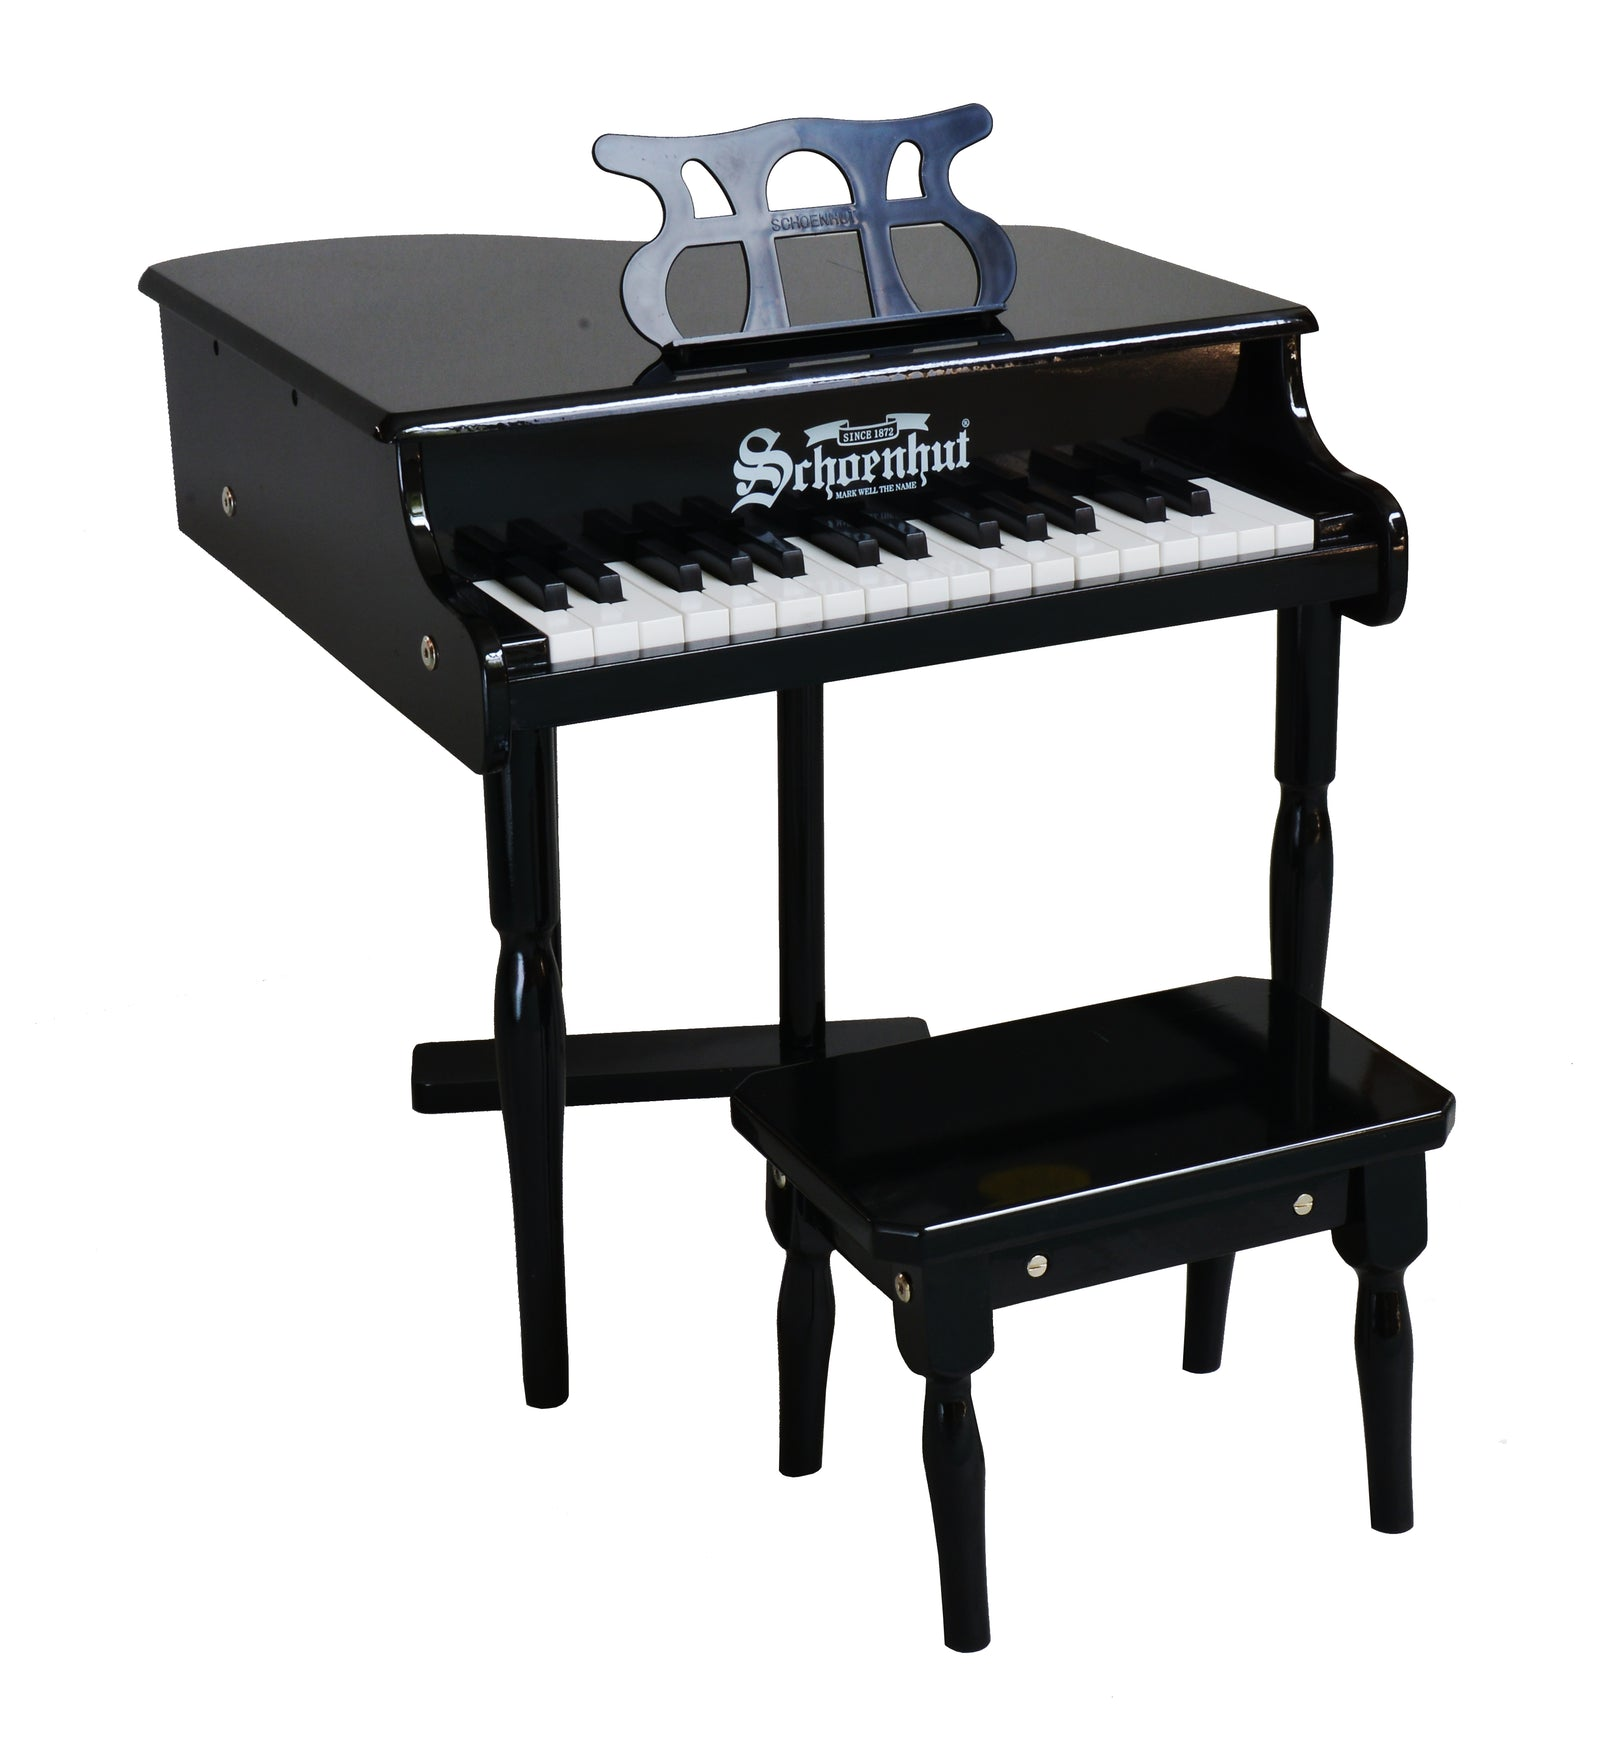 Schoenhut classic baby grand piano 30 key black for Smallest baby grand piano dimensions